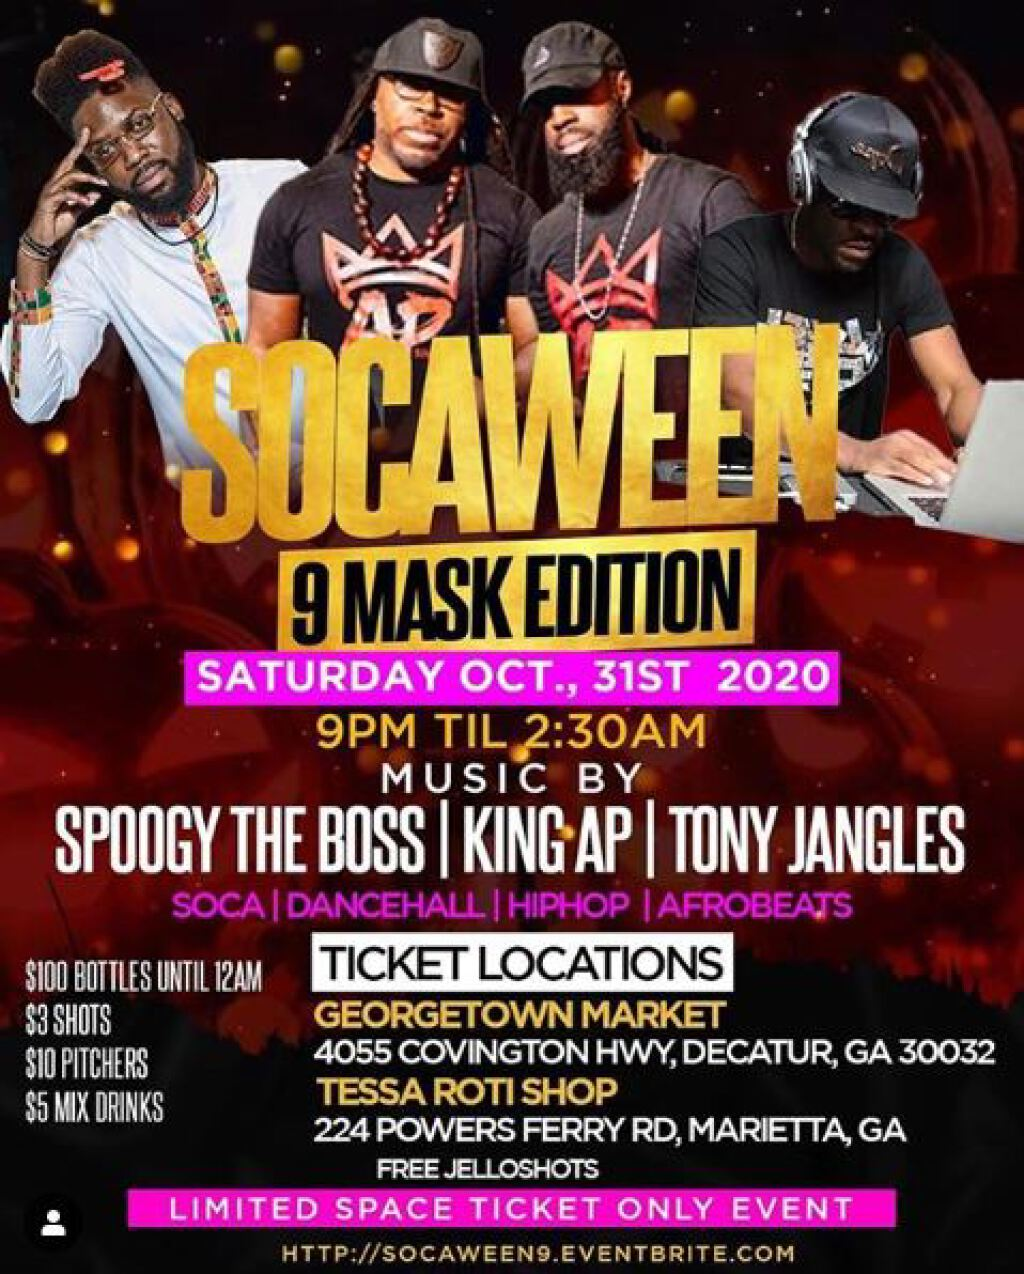 Socaween 9 flyer or graphic.